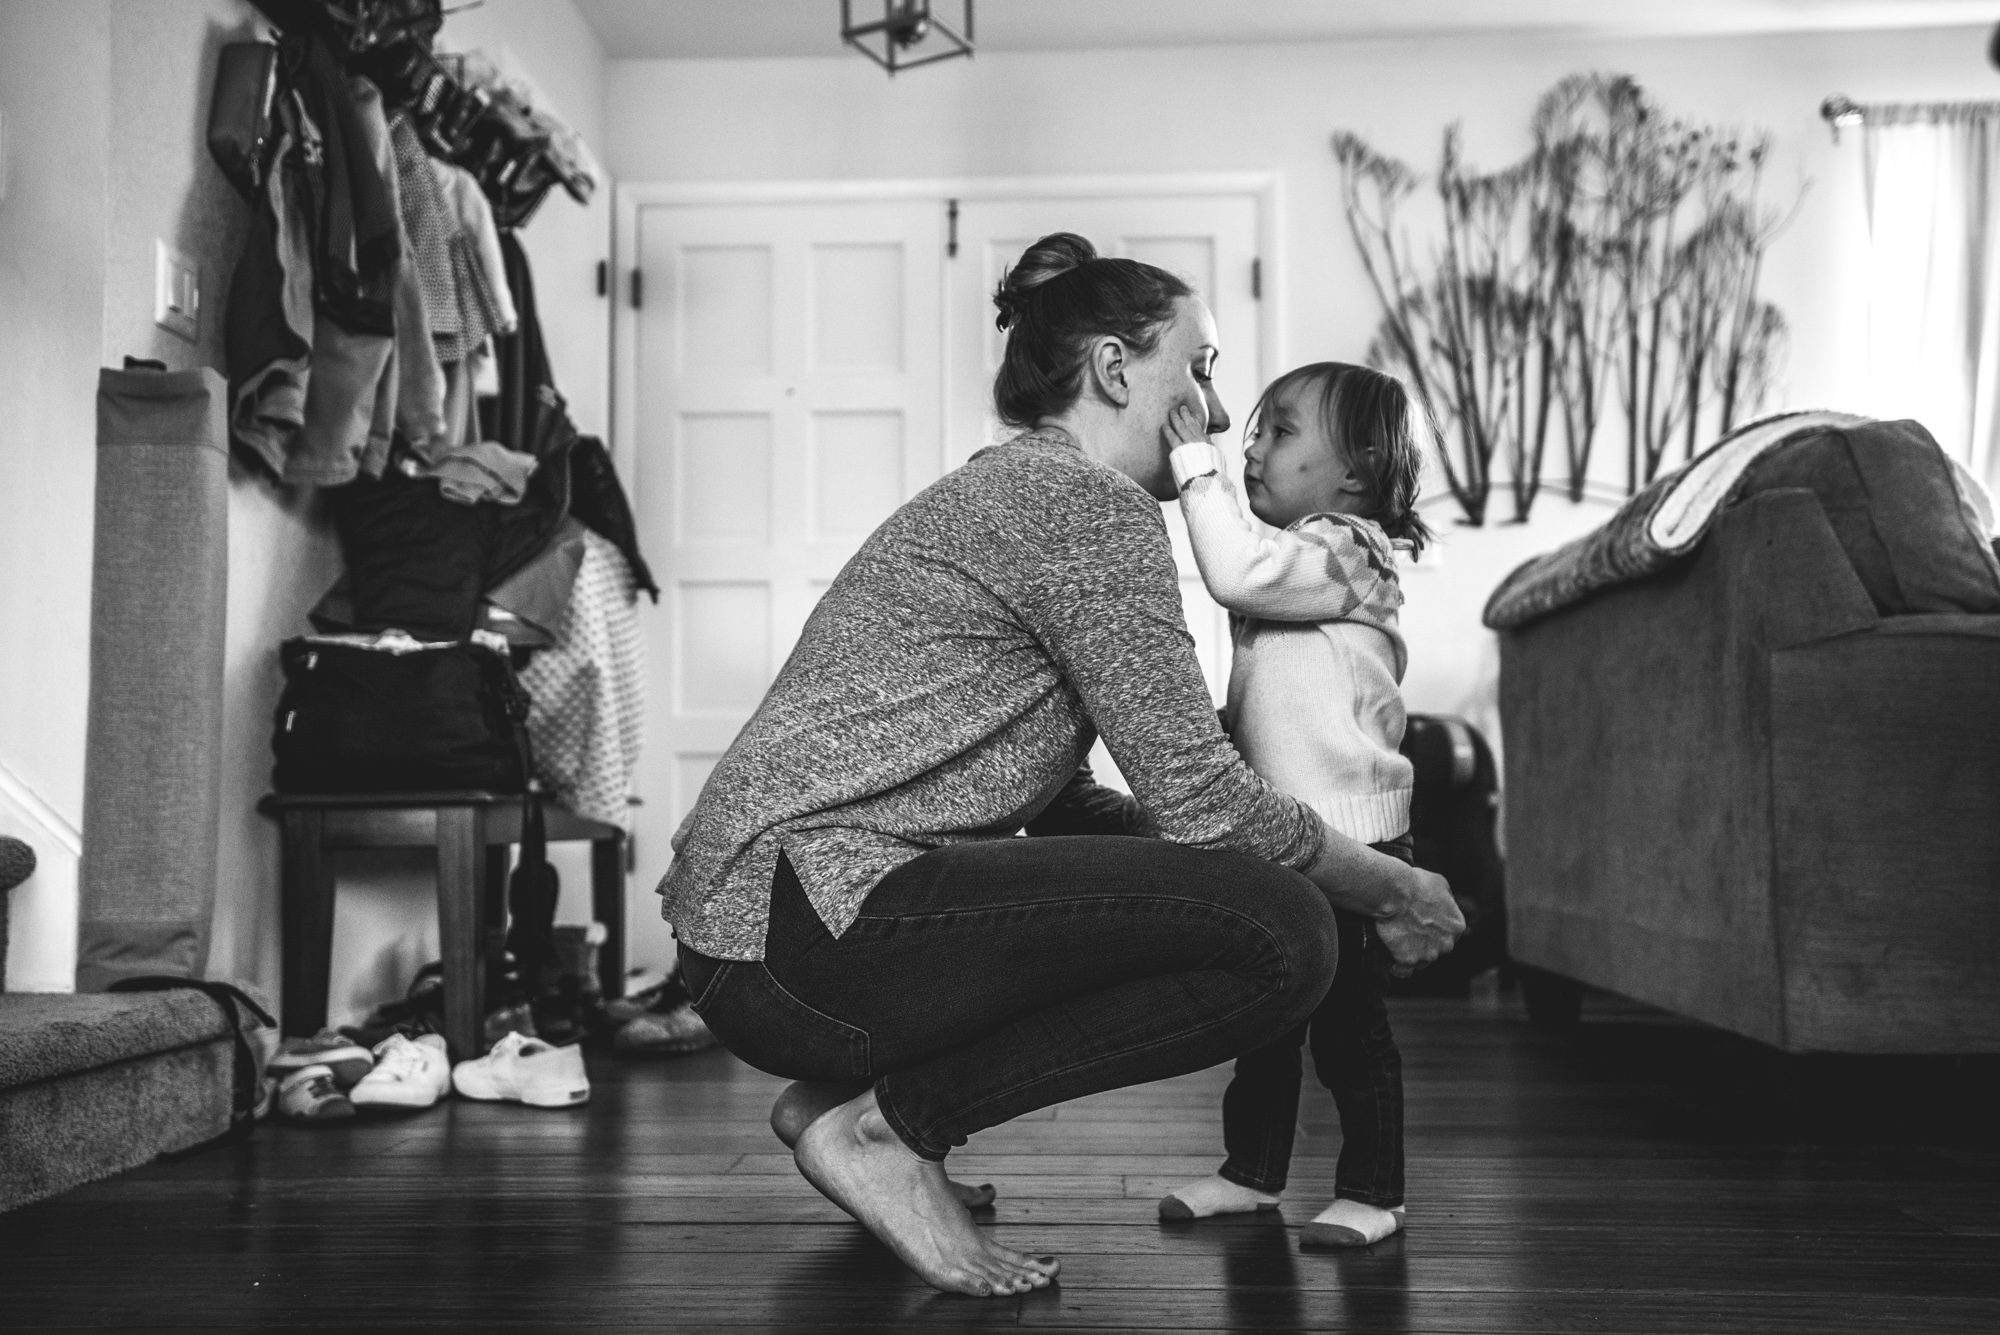 A mother leans down and her young daughter lightly touches her face, black and white, documentary family photography session, Denver, CO